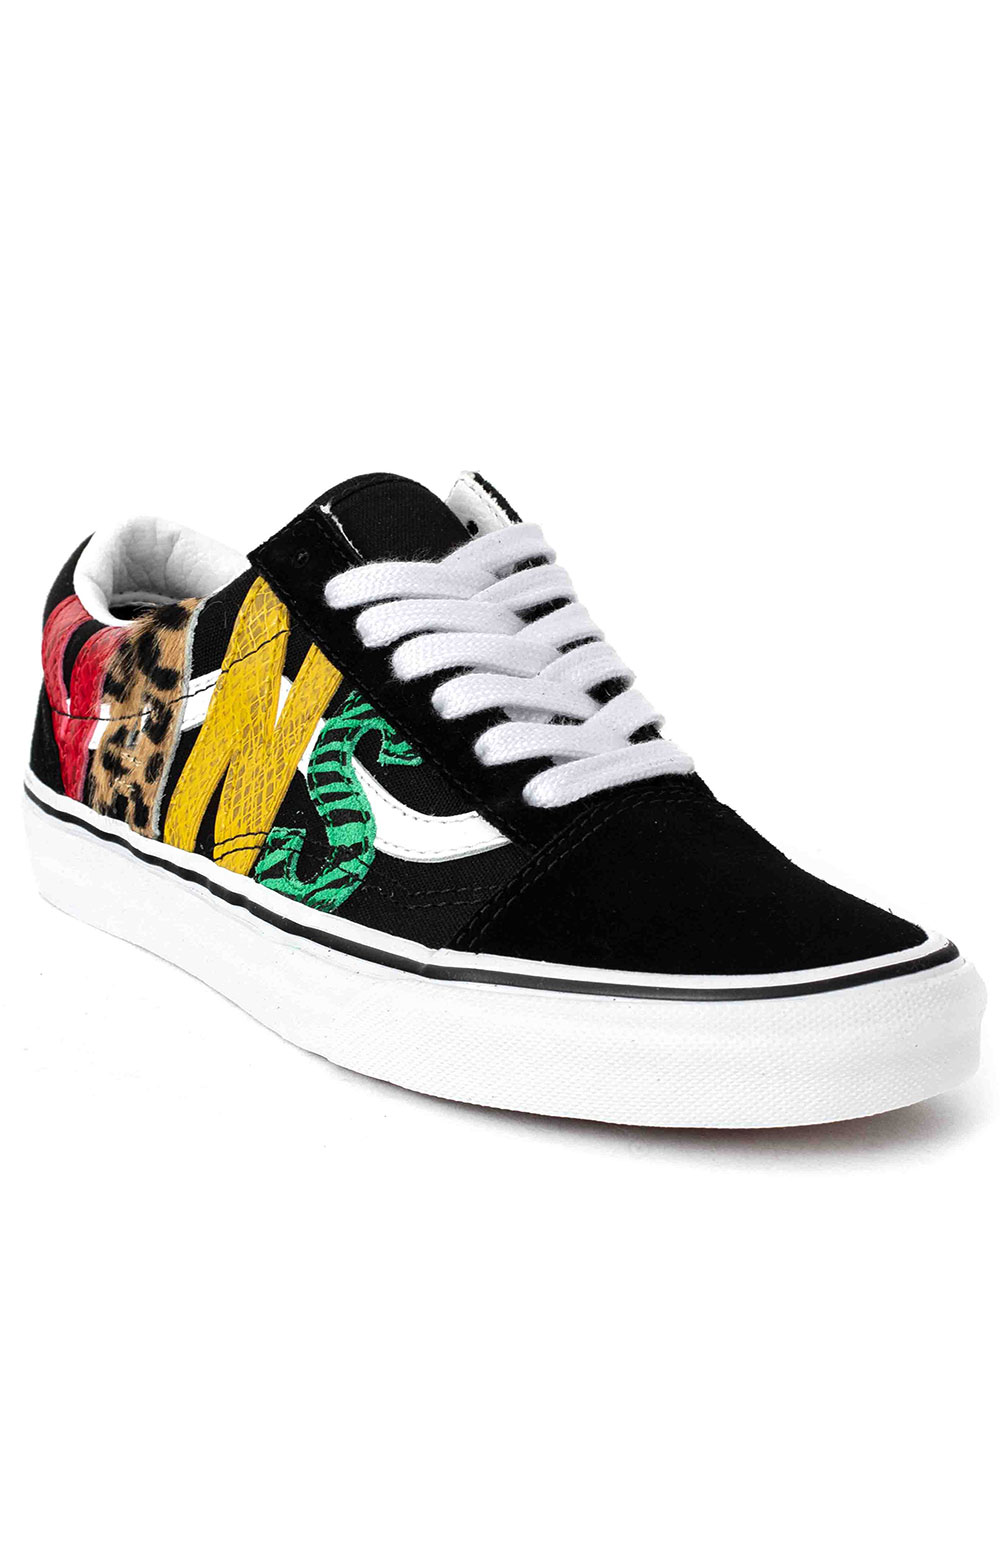 (U3BXF1) Multi Animal Old Skool Shoes - Rasta 3